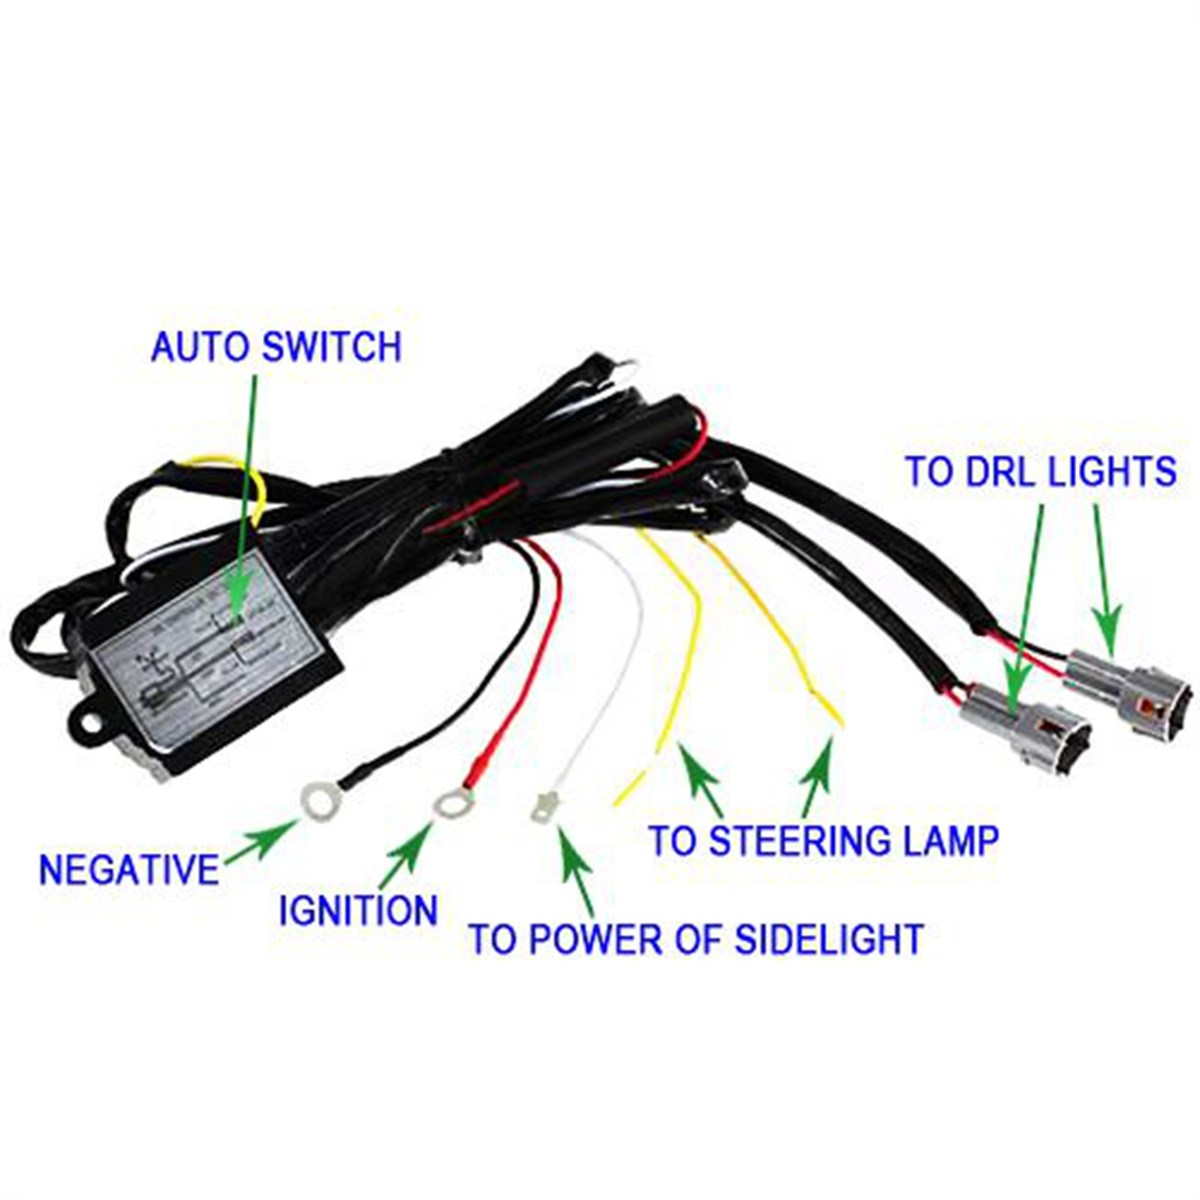 drl led daytime running light relay harness automatic on off control switch 12v warning lights  [ 1200 x 1200 Pixel ]